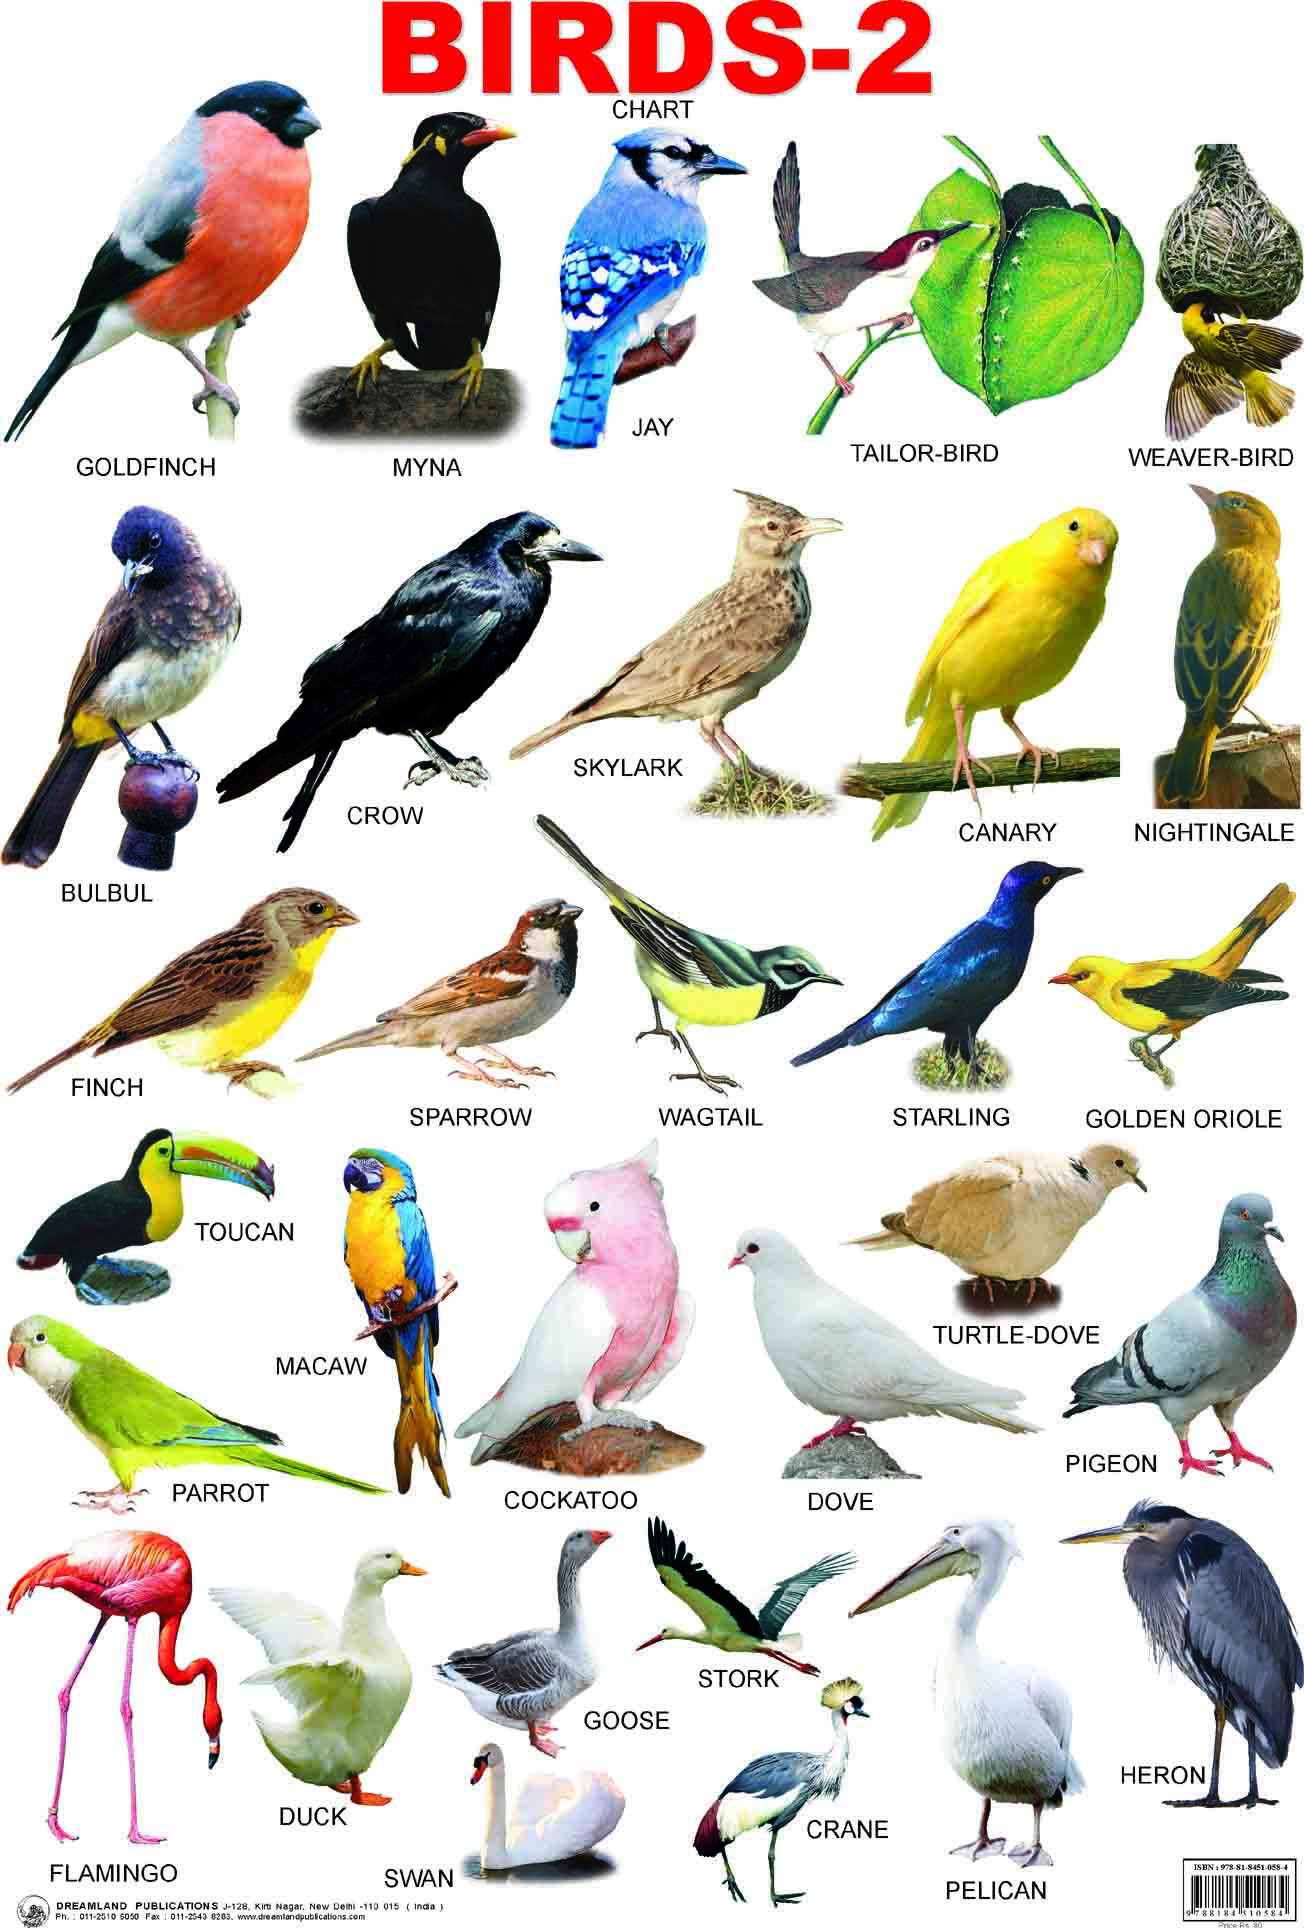 birds with names - Google Search | Birds And Birds Supplies ...